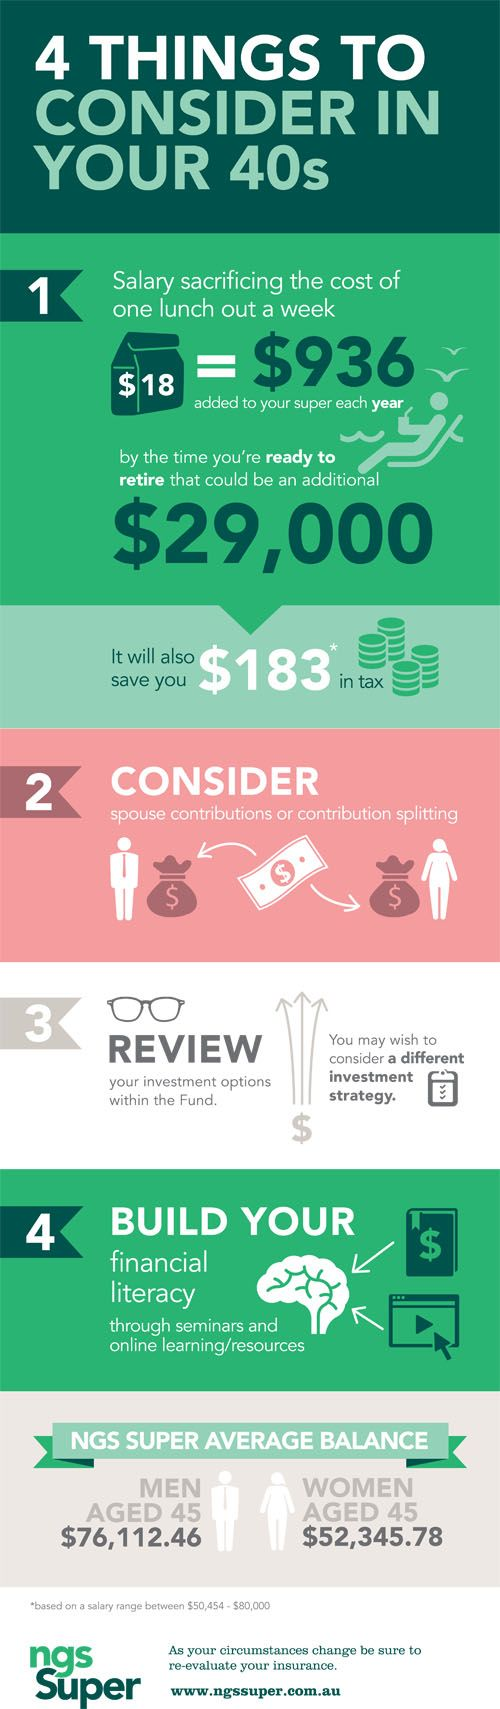 Super tips - 4 things to consider in your 40s. #superannuation #retirement